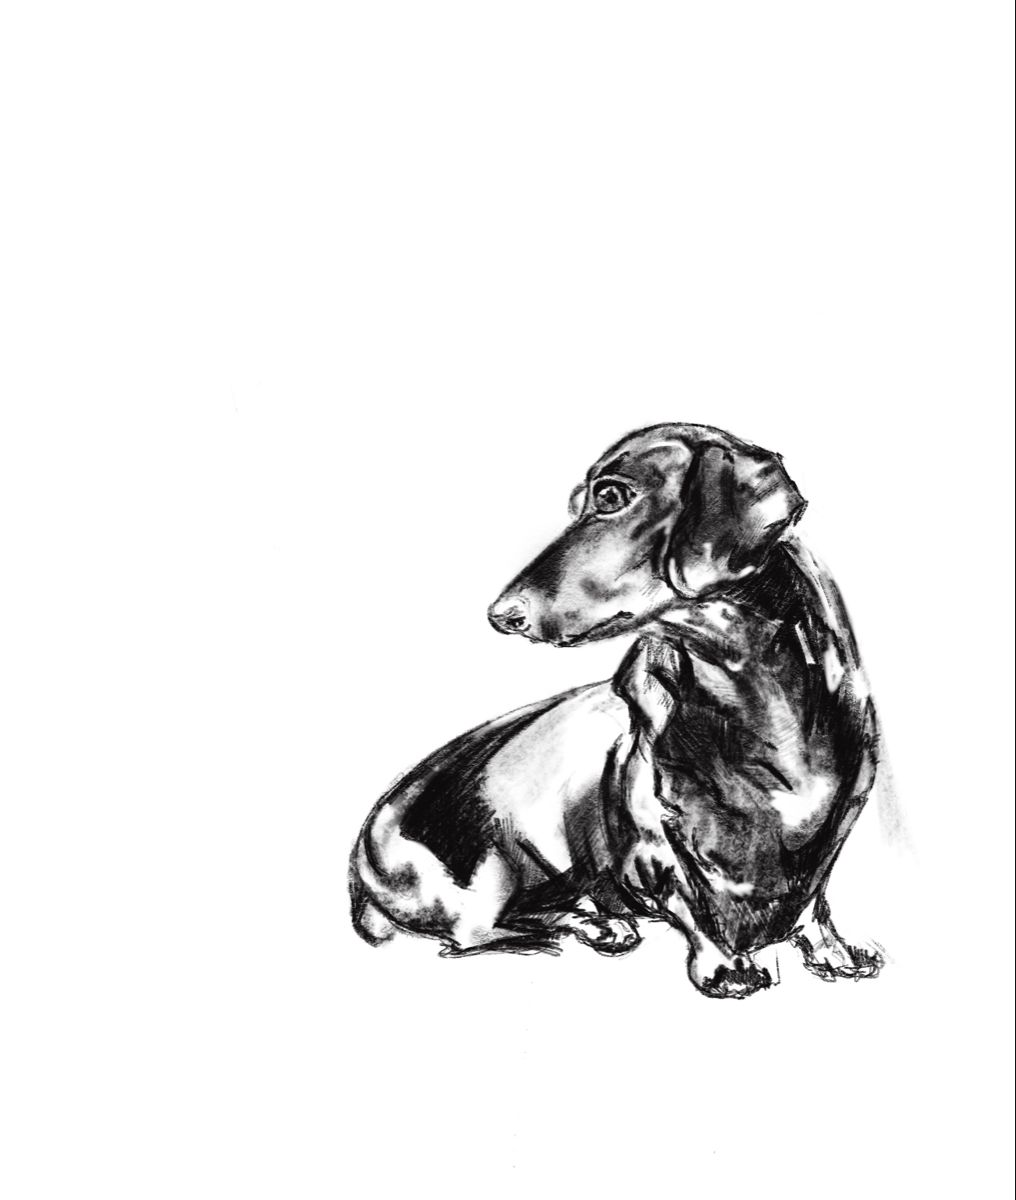 Dachshund Doggy In 2020 Dachshund Animal Tattoo Digital Drawing